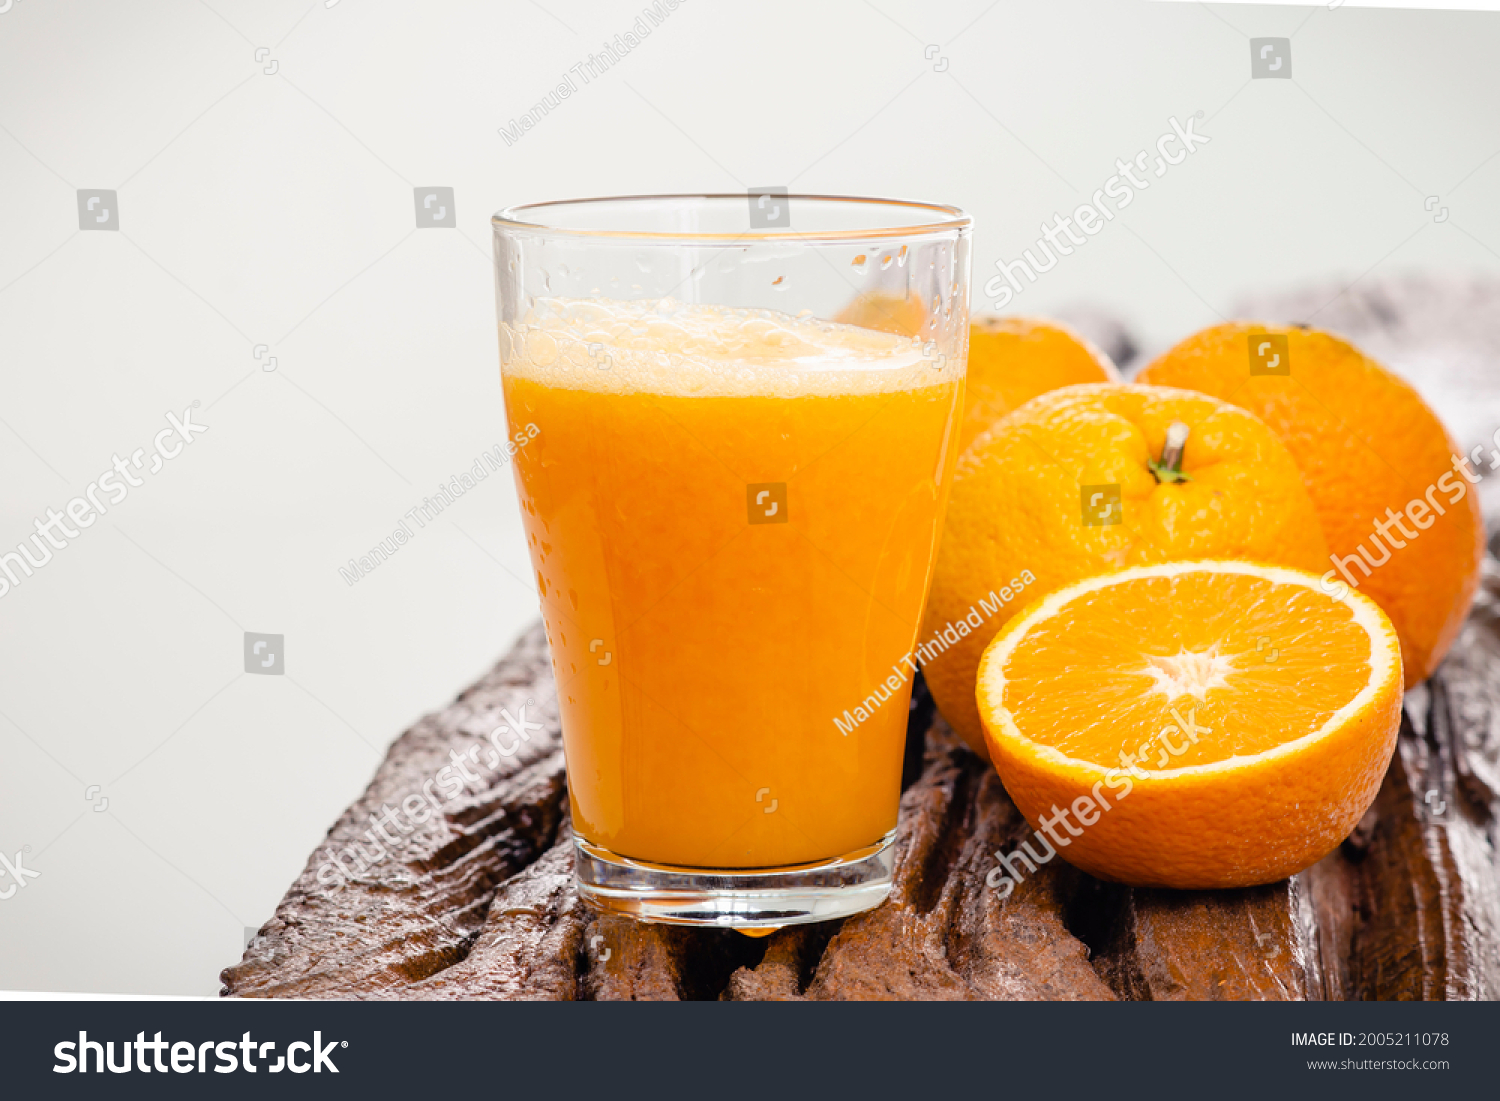 Oranges and juice on a rustic wood and white background